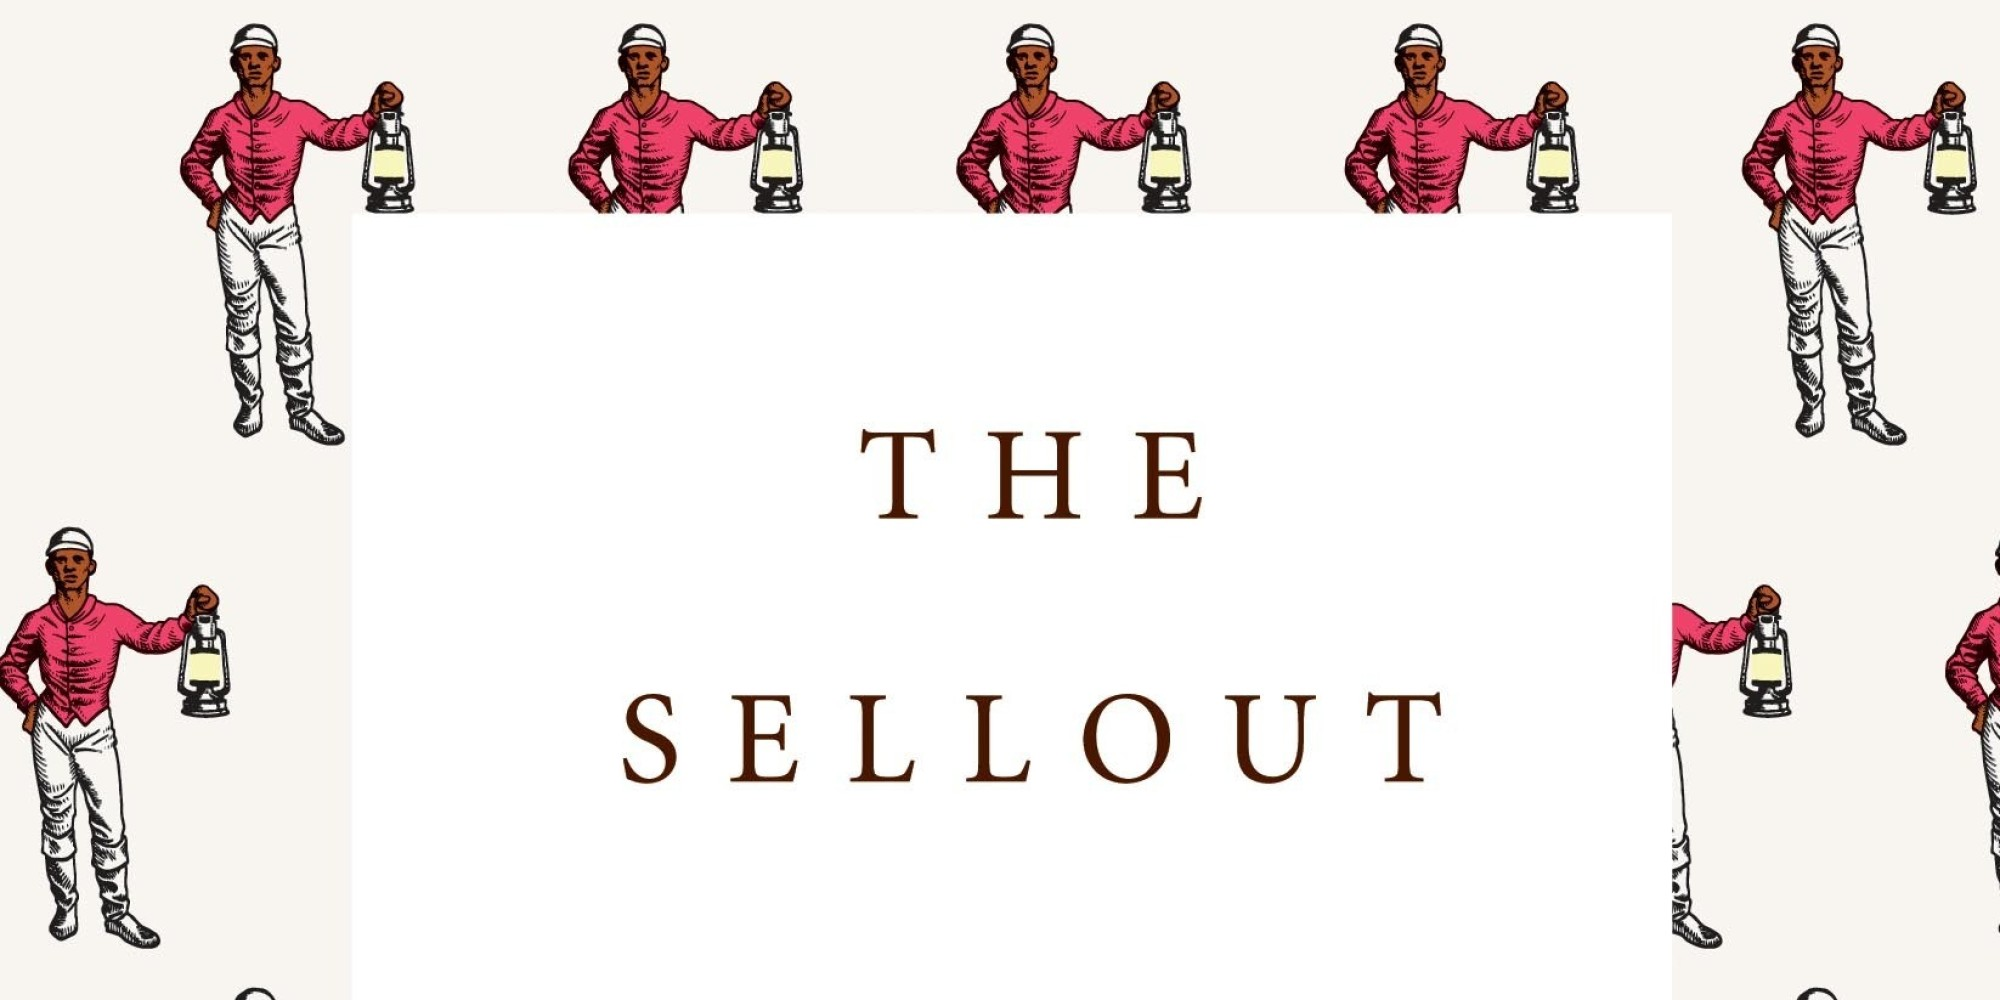 Review of: Paul Beatty, The Sellout (New York: Farrar, Straus and Giroux, 2015)